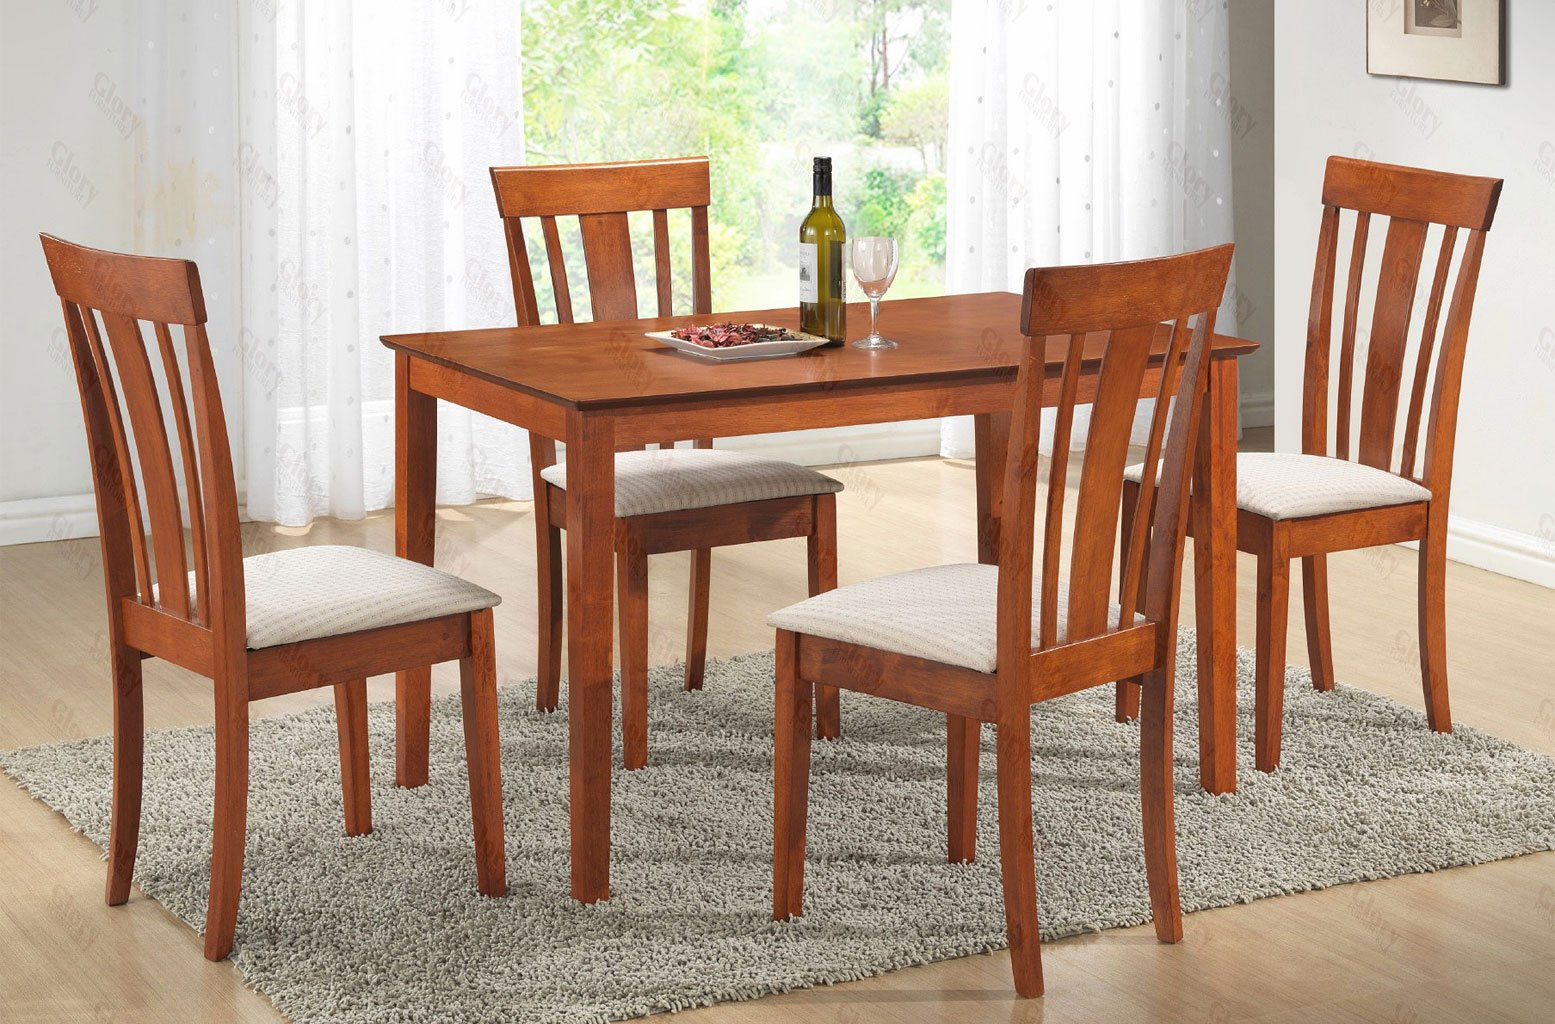 maple dining room chairs evenflo compact high chair g0030 set w g0050 by glory